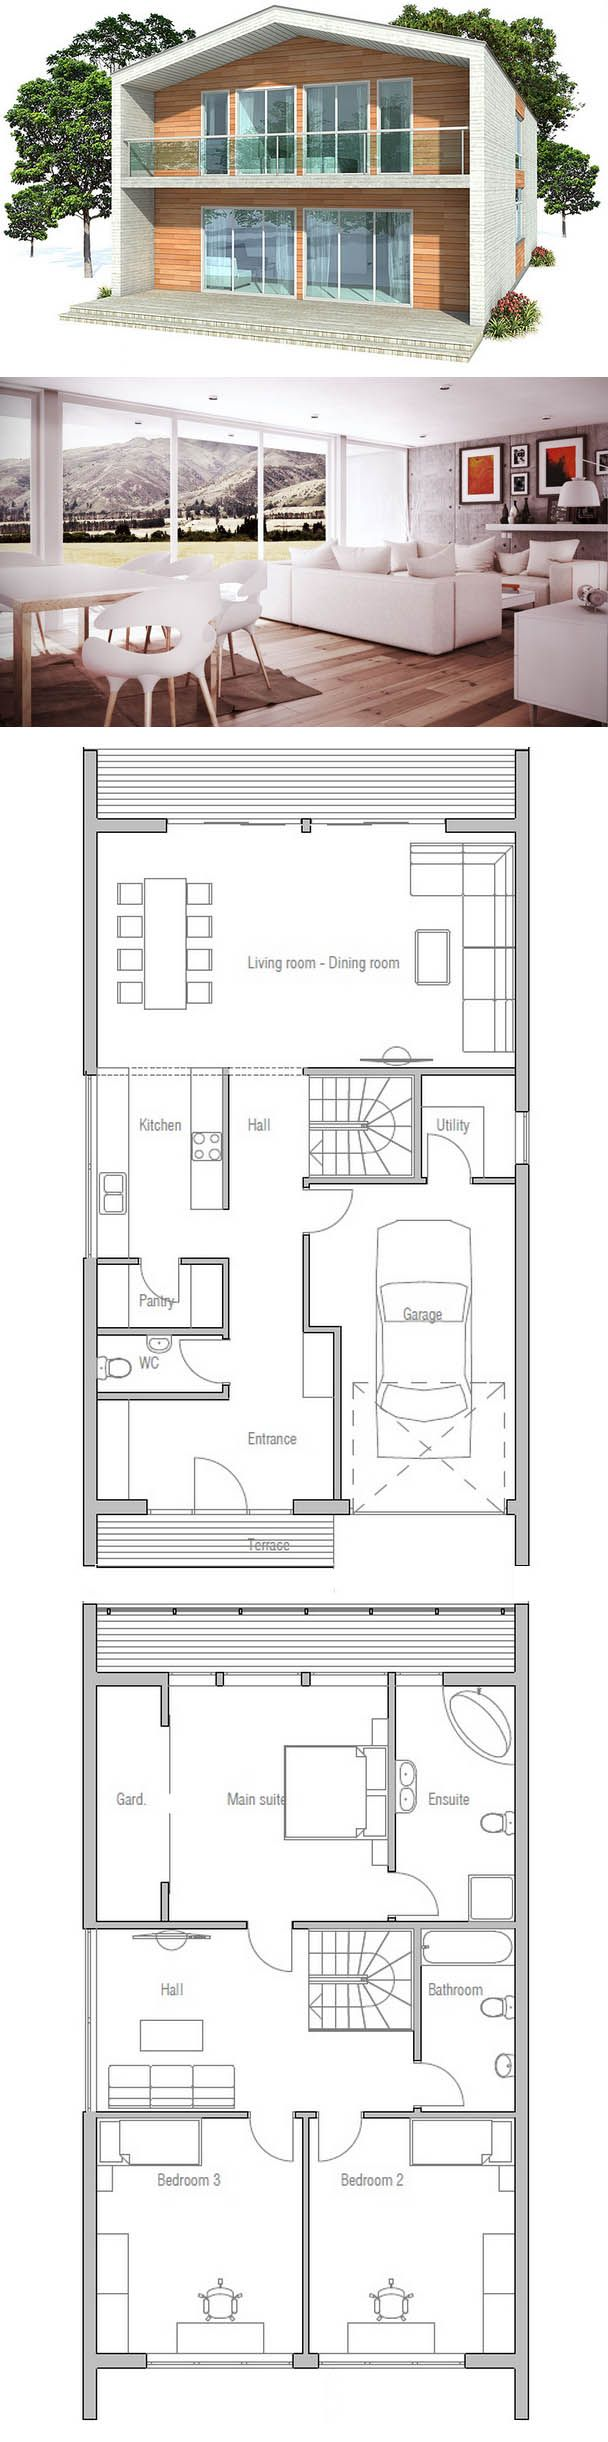 365 best Small Homes images on Pinterest | Small homes, Small houses Firewall House Design In Philippi E A on